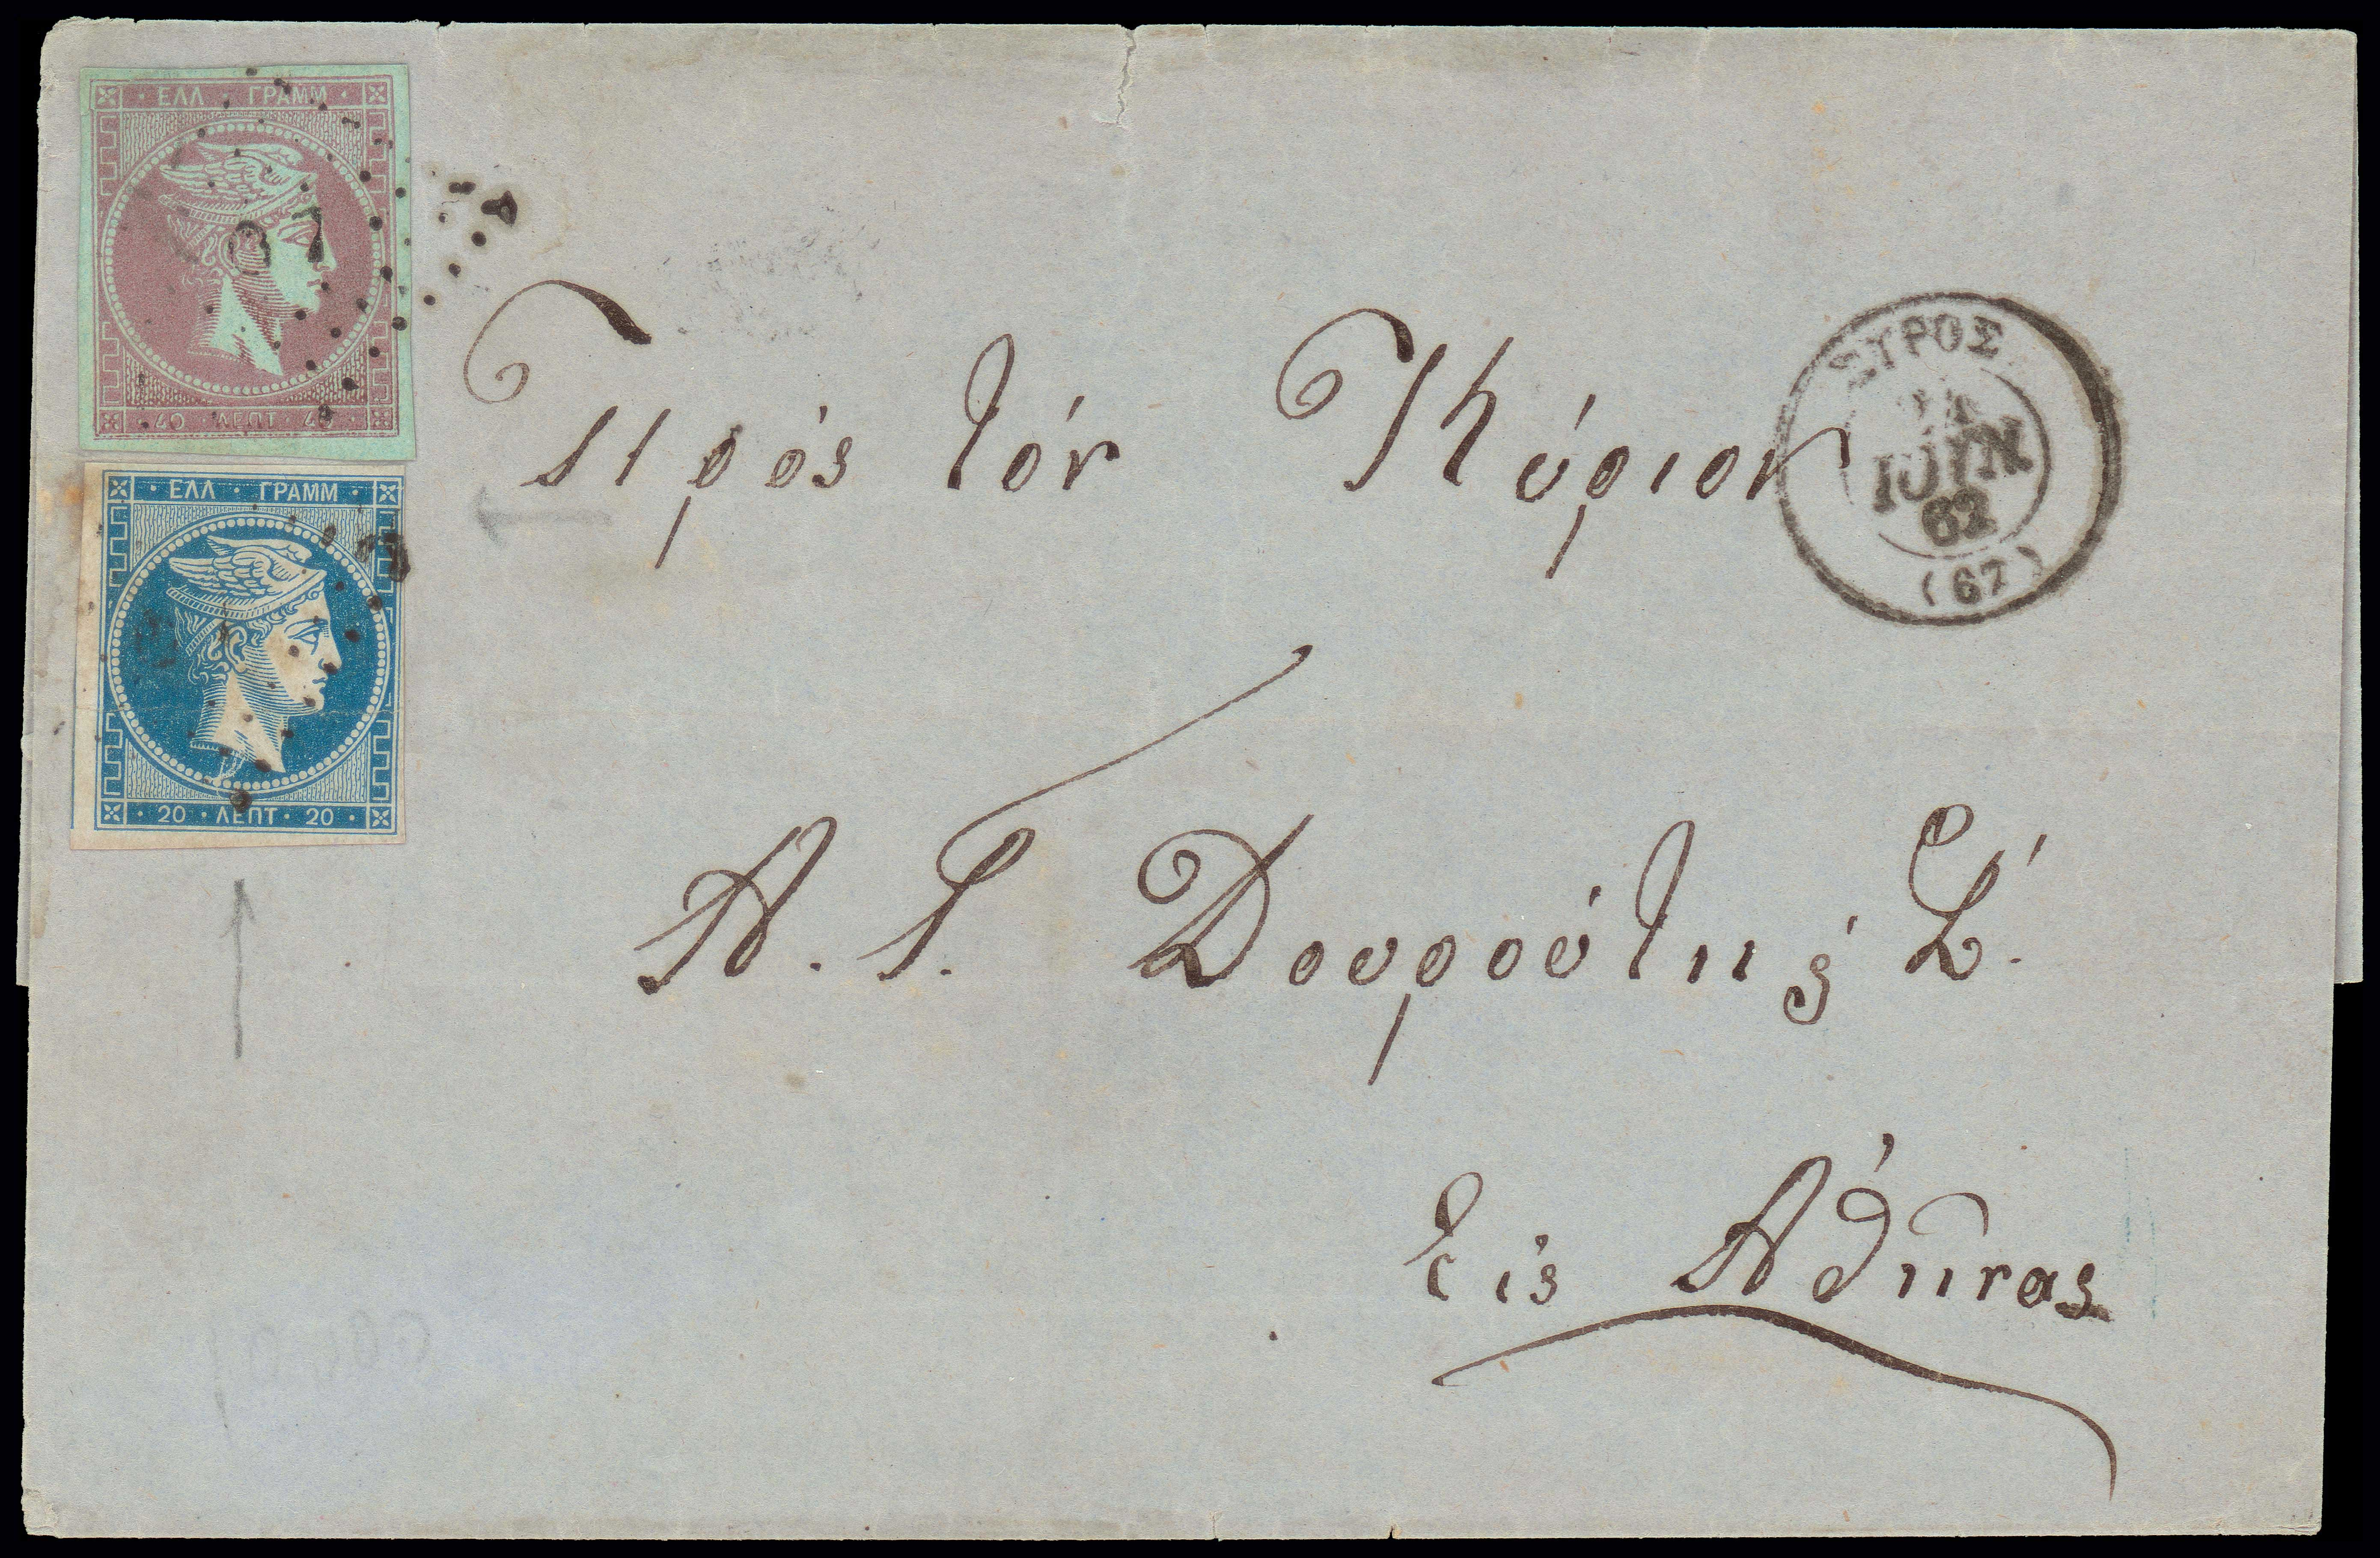 Lot 114 - -  LARGE HERMES HEAD 1861/1862 athens provisional printings -  A. Karamitsos Public & LIVE Bid Auction 651. Large Hermes Heads Exceptional Stamps from Great Collections